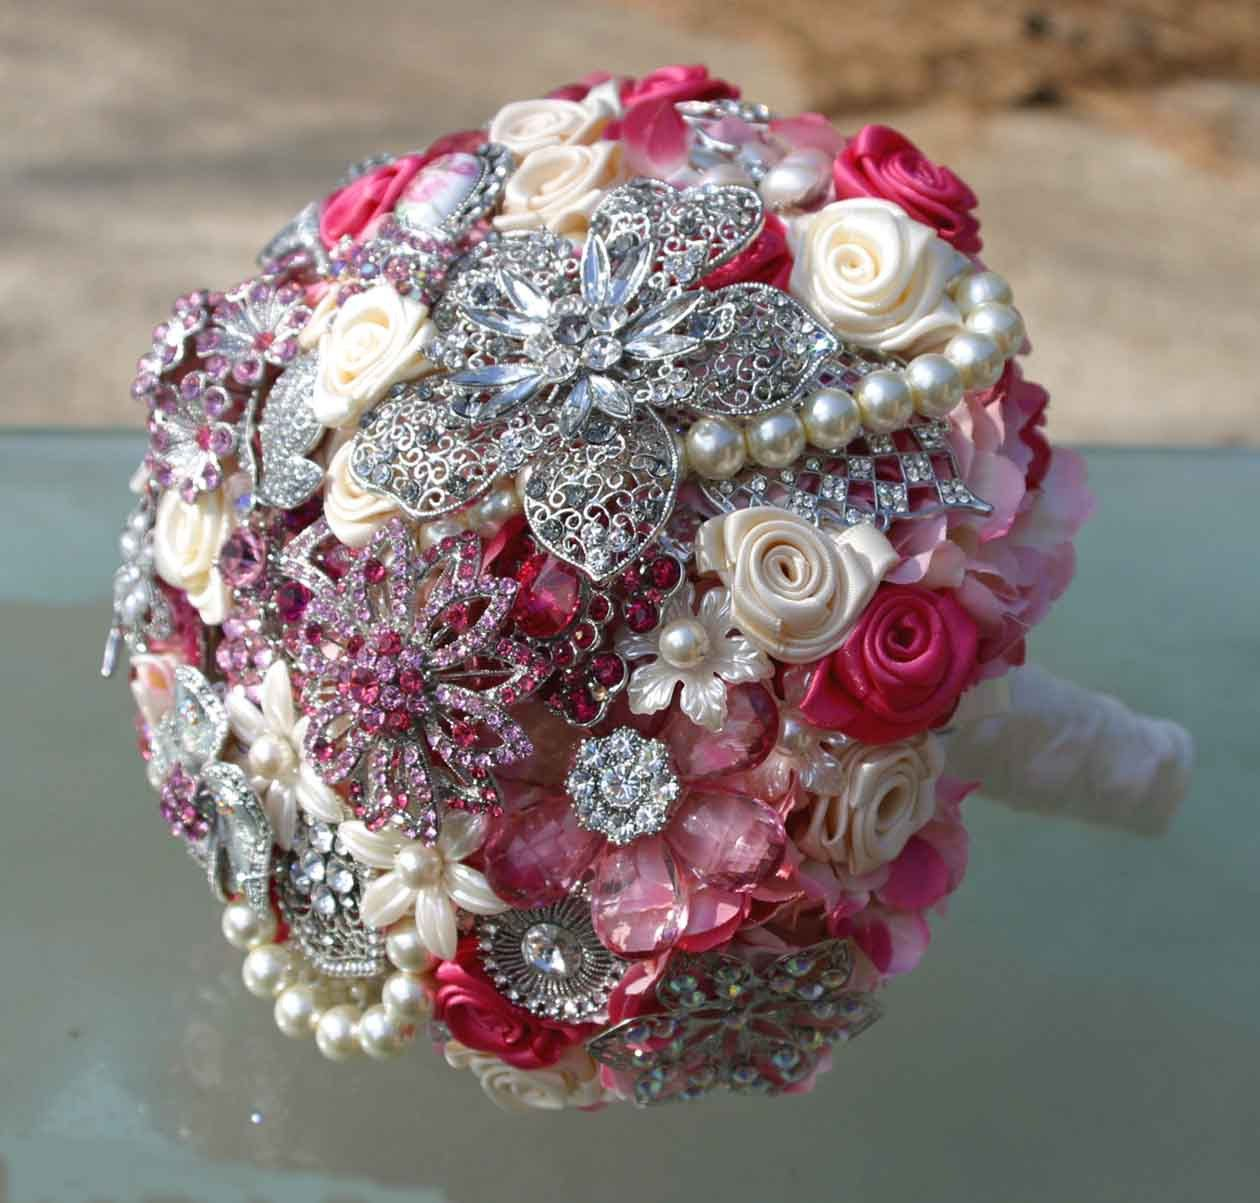 A bling bouquet! Randomly found this in the crafts but I love this!